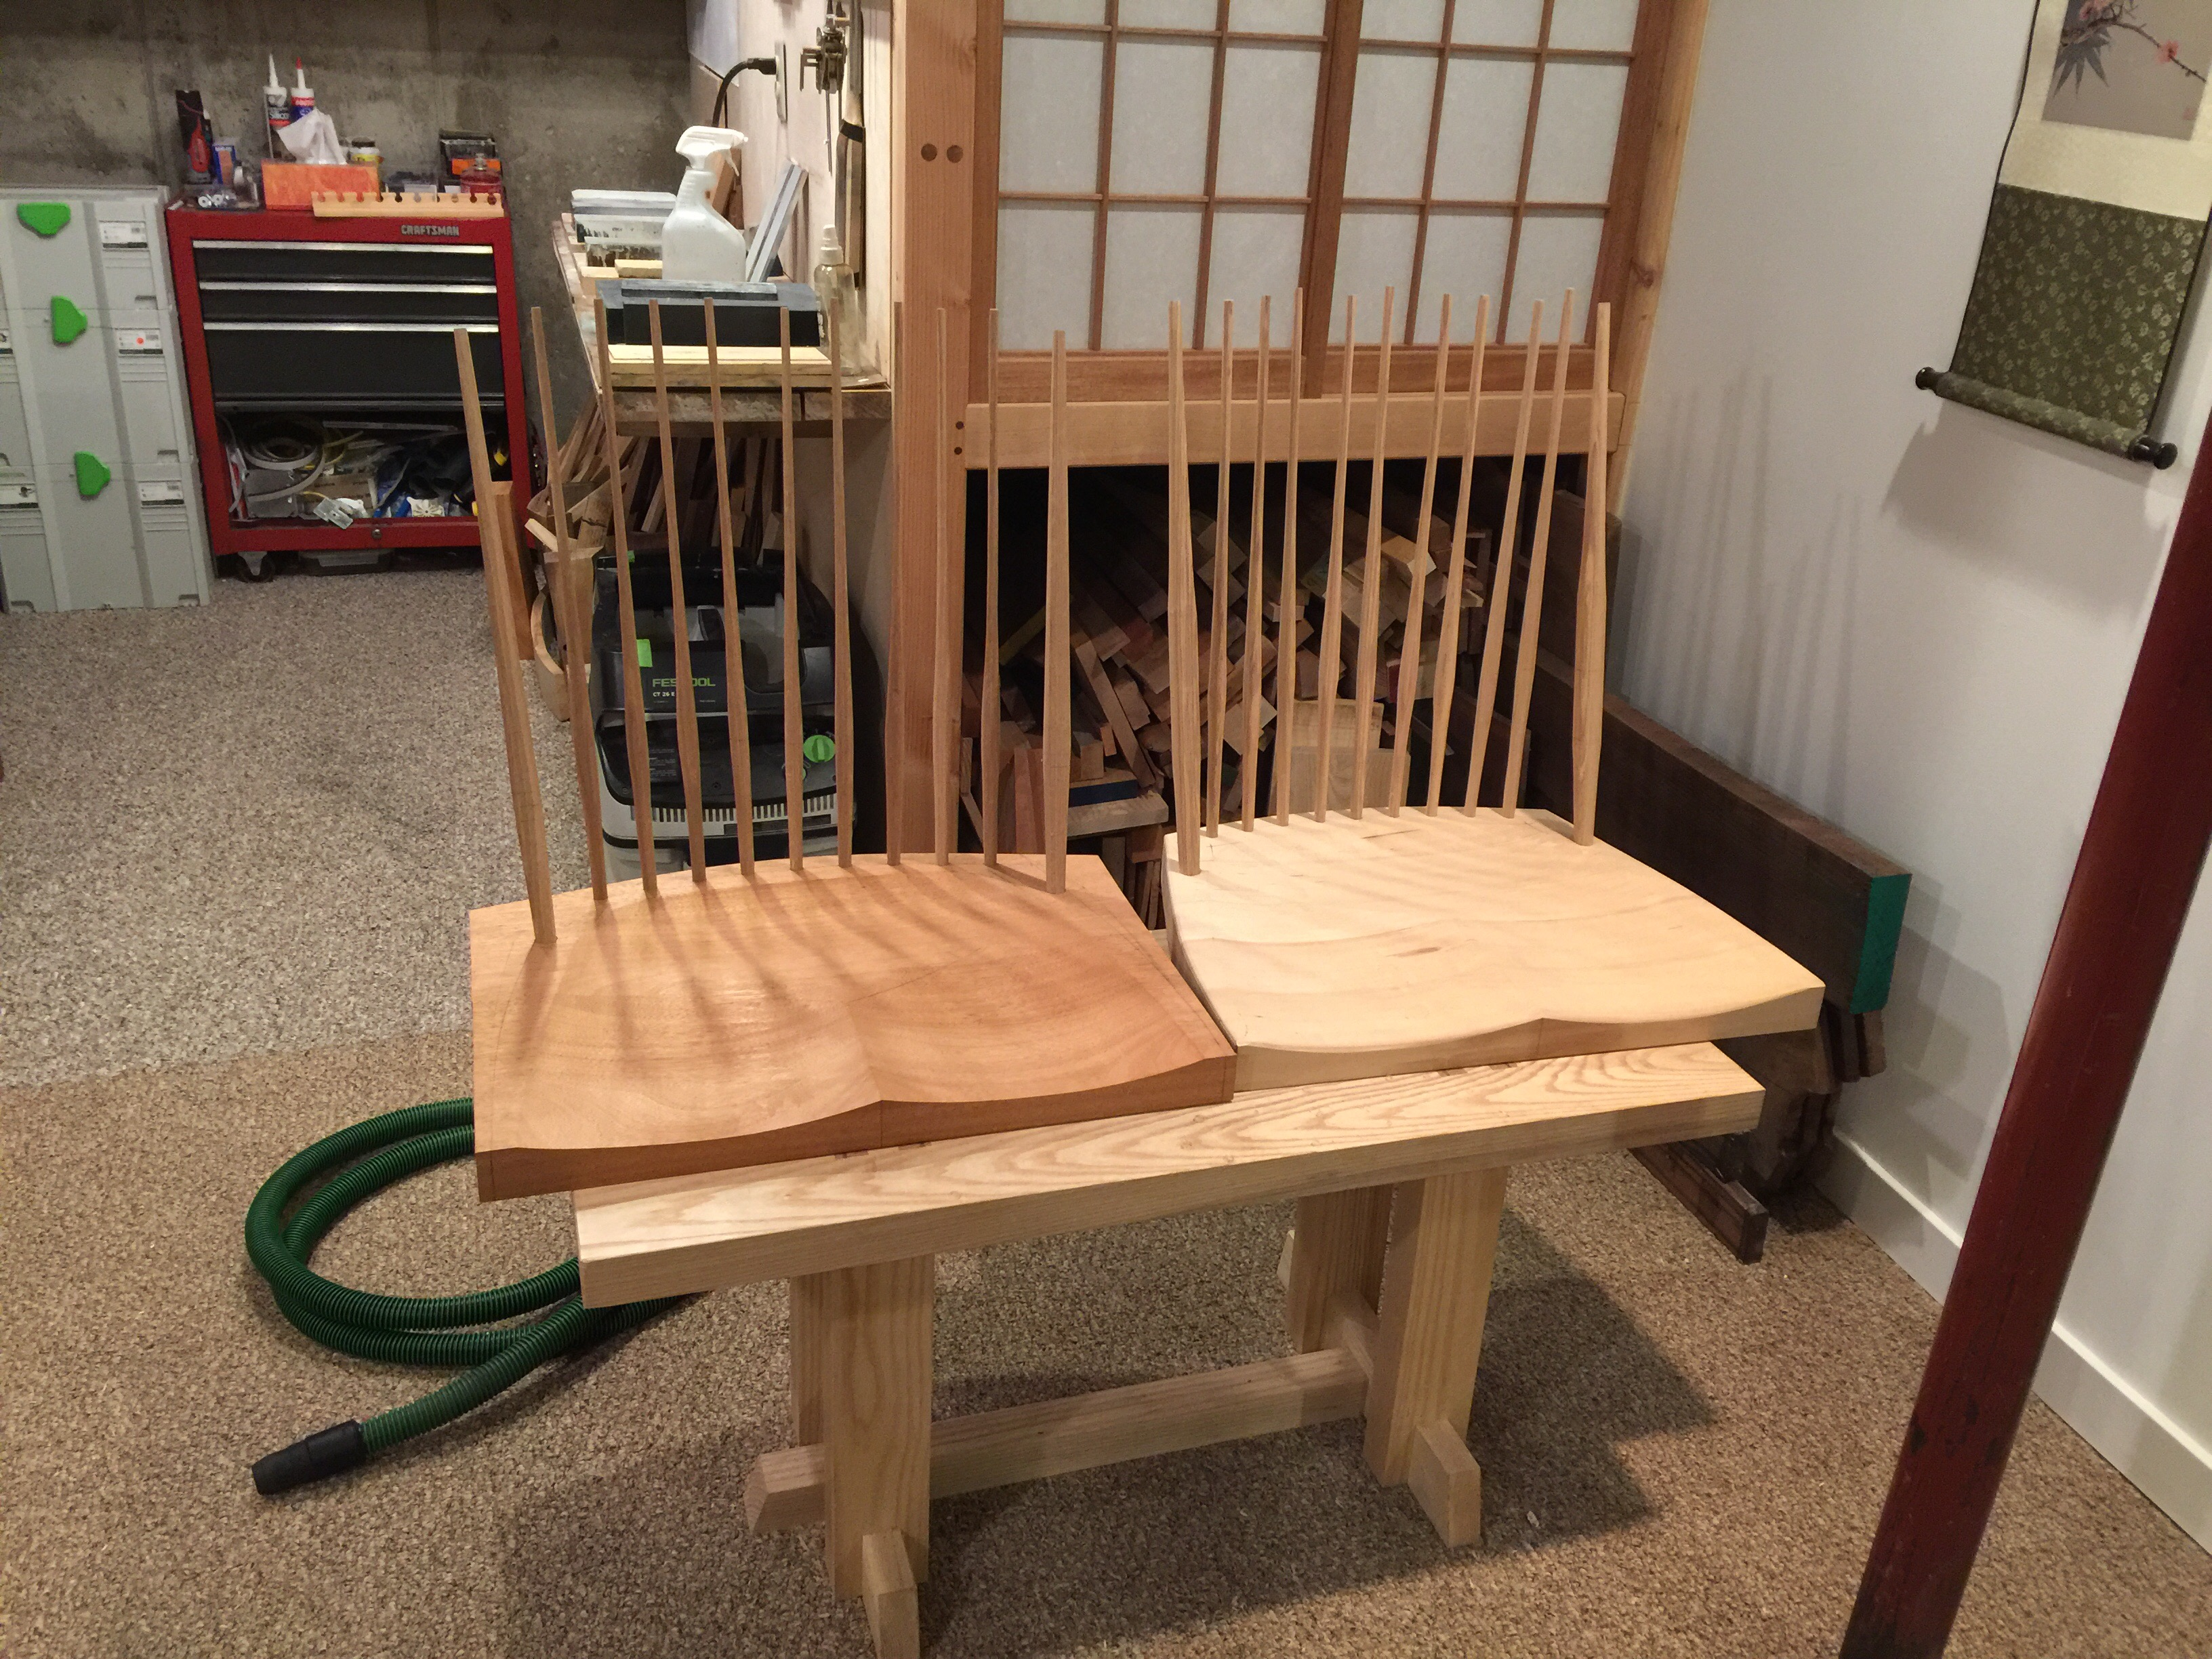 Once The Comb Is Installed And I Can See How The Spindles Arch, I Will  Further Fine Tune Them, Along With The Posts. The Spindles Are Very Near To  Their ...